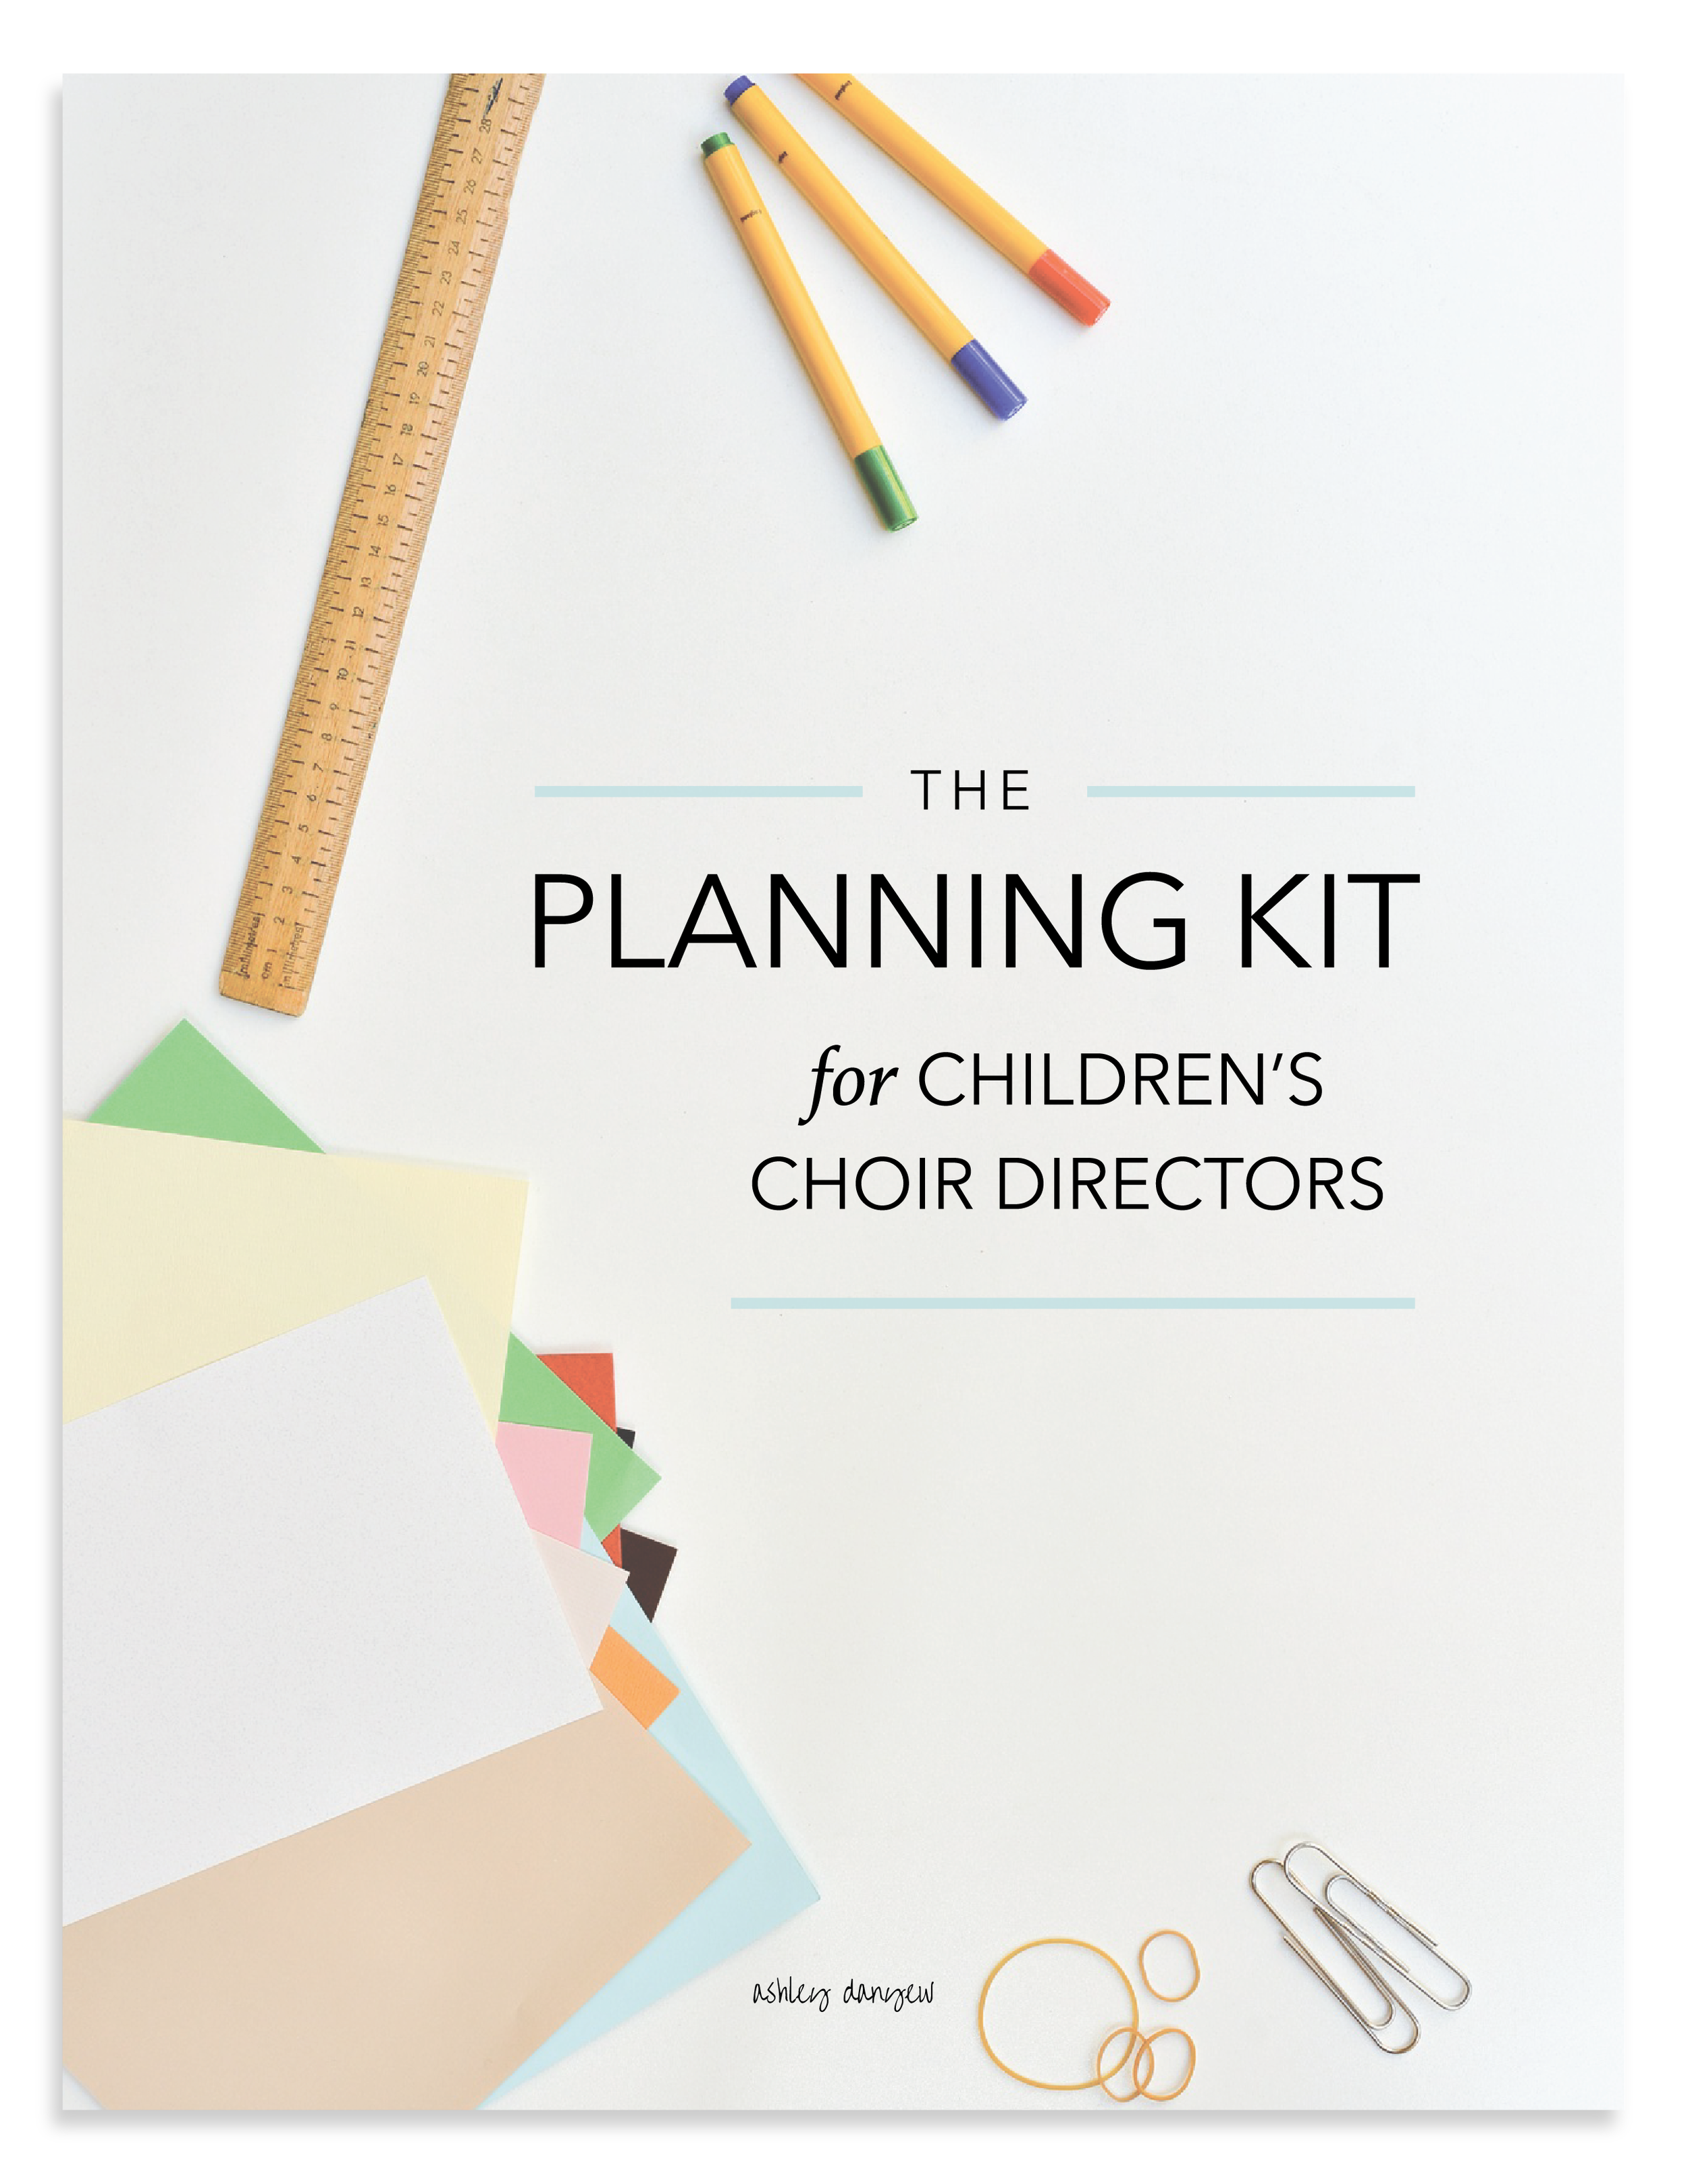 The Planning Kit for Children's Choir Directors_Ashley Danyew.png